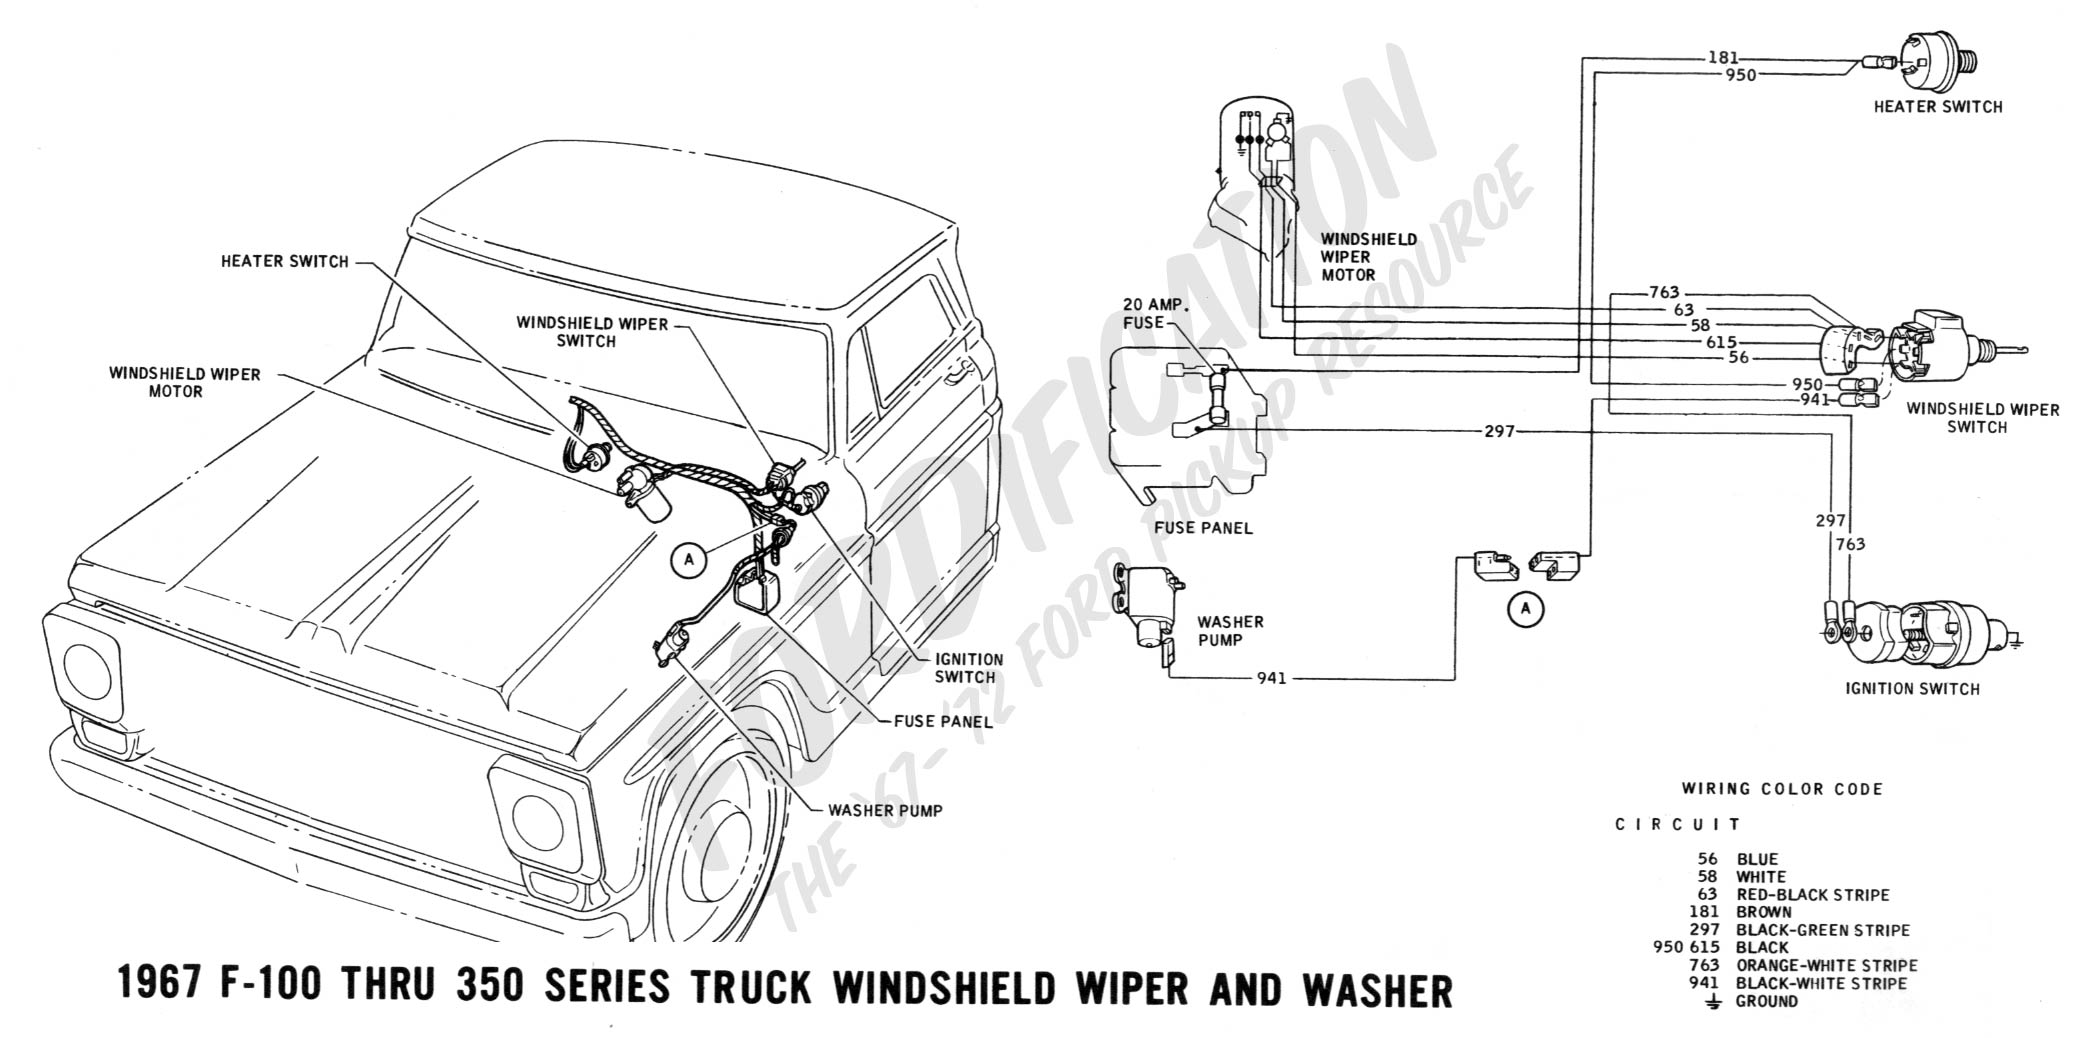 1968 Mustang Wiring Diagram Vacuum Schematics in addition 1126890 65 Ford F100 Wiring Diagrams furthermore Q3g4 likewise 73 Camaro Dash Wiring Diagram additionally 1204. on dash wiring diagram 1972 camaro